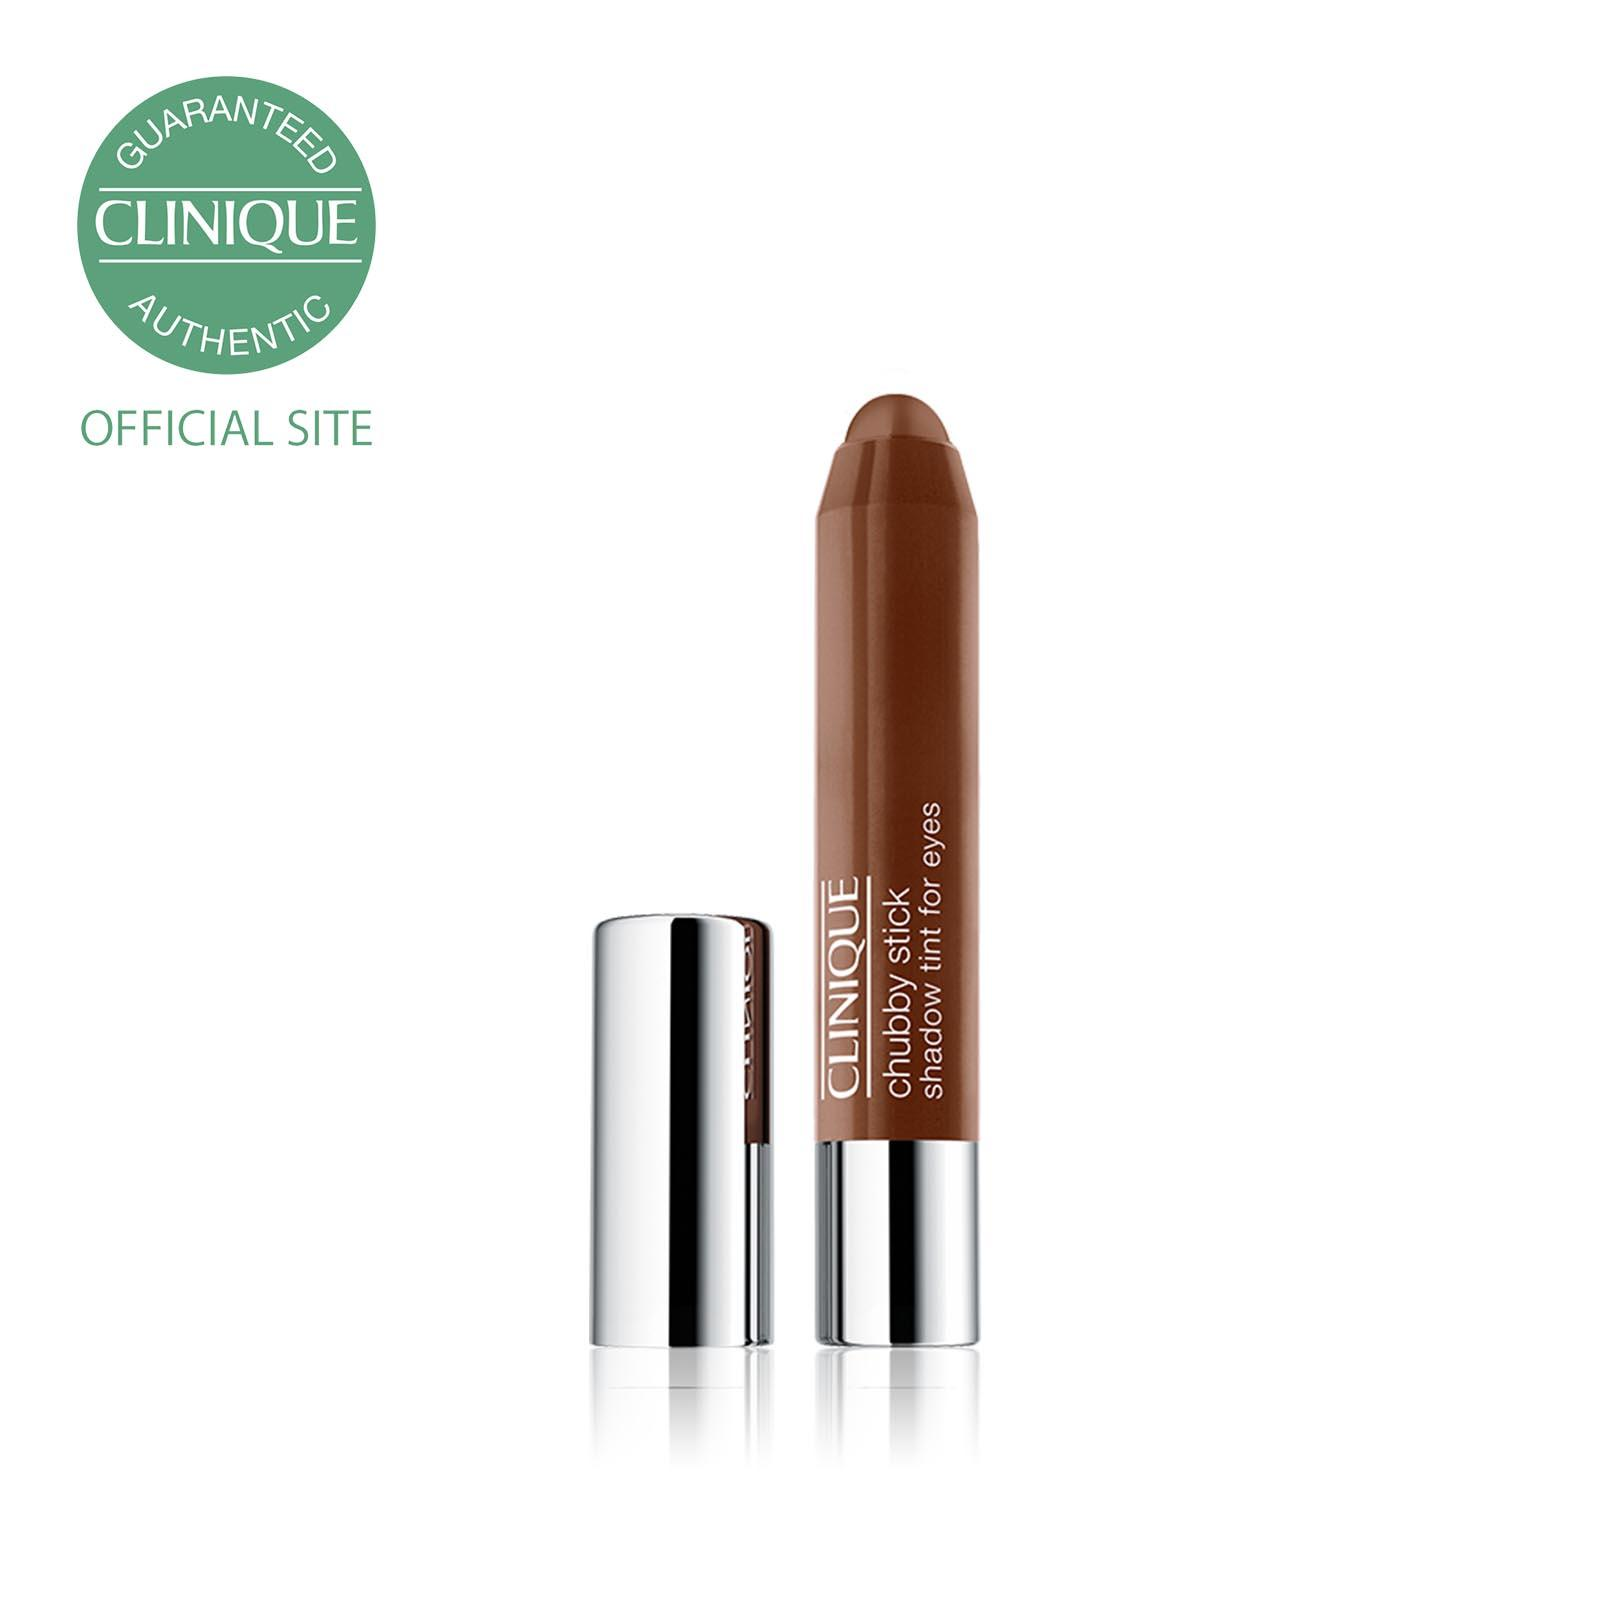 Clinique Chubby Stick Shadow Tint For Eyes Philippines